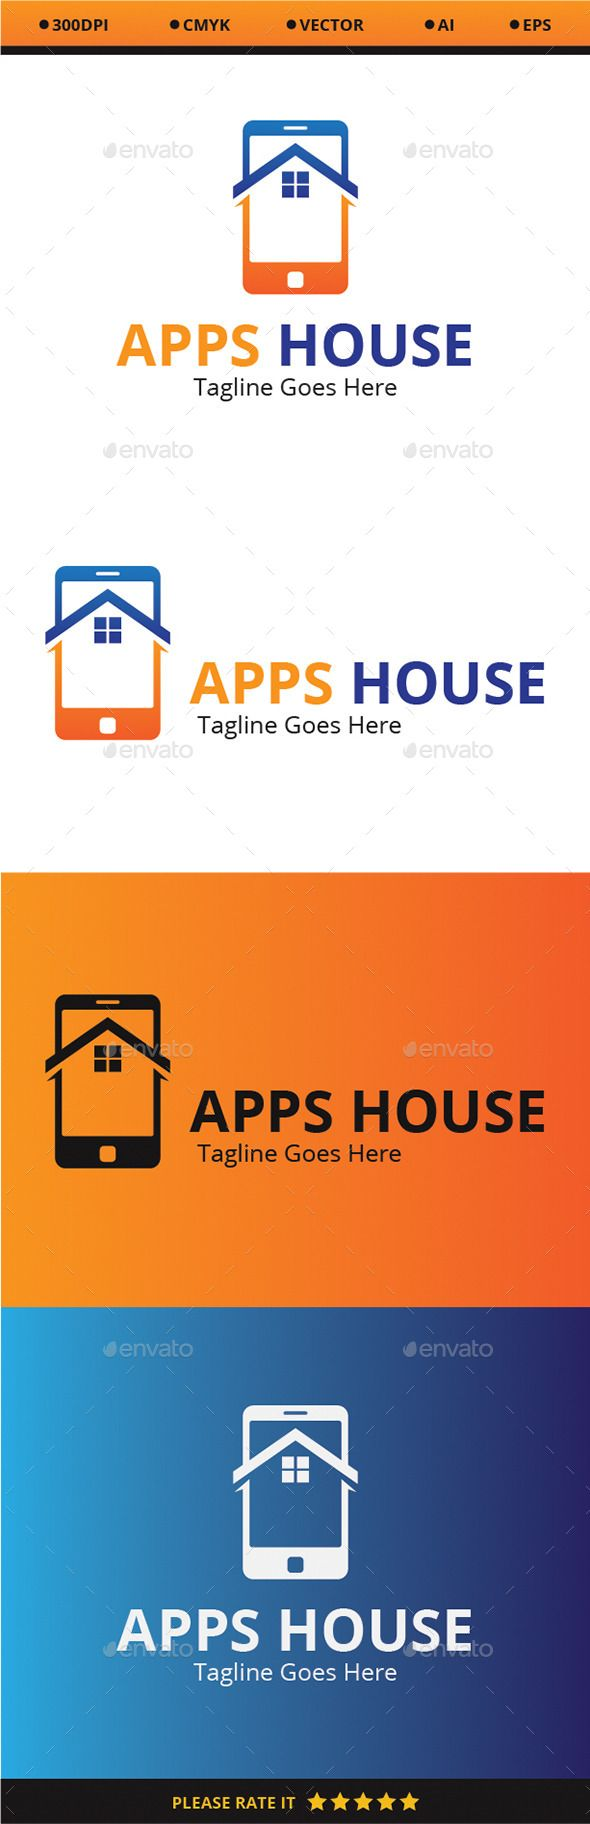 Apps House Logo Design Template Vector #logotype Download it here:  http://graphicriver.net/item/apps-house/9319035?s_rank=1340?ref=nexion